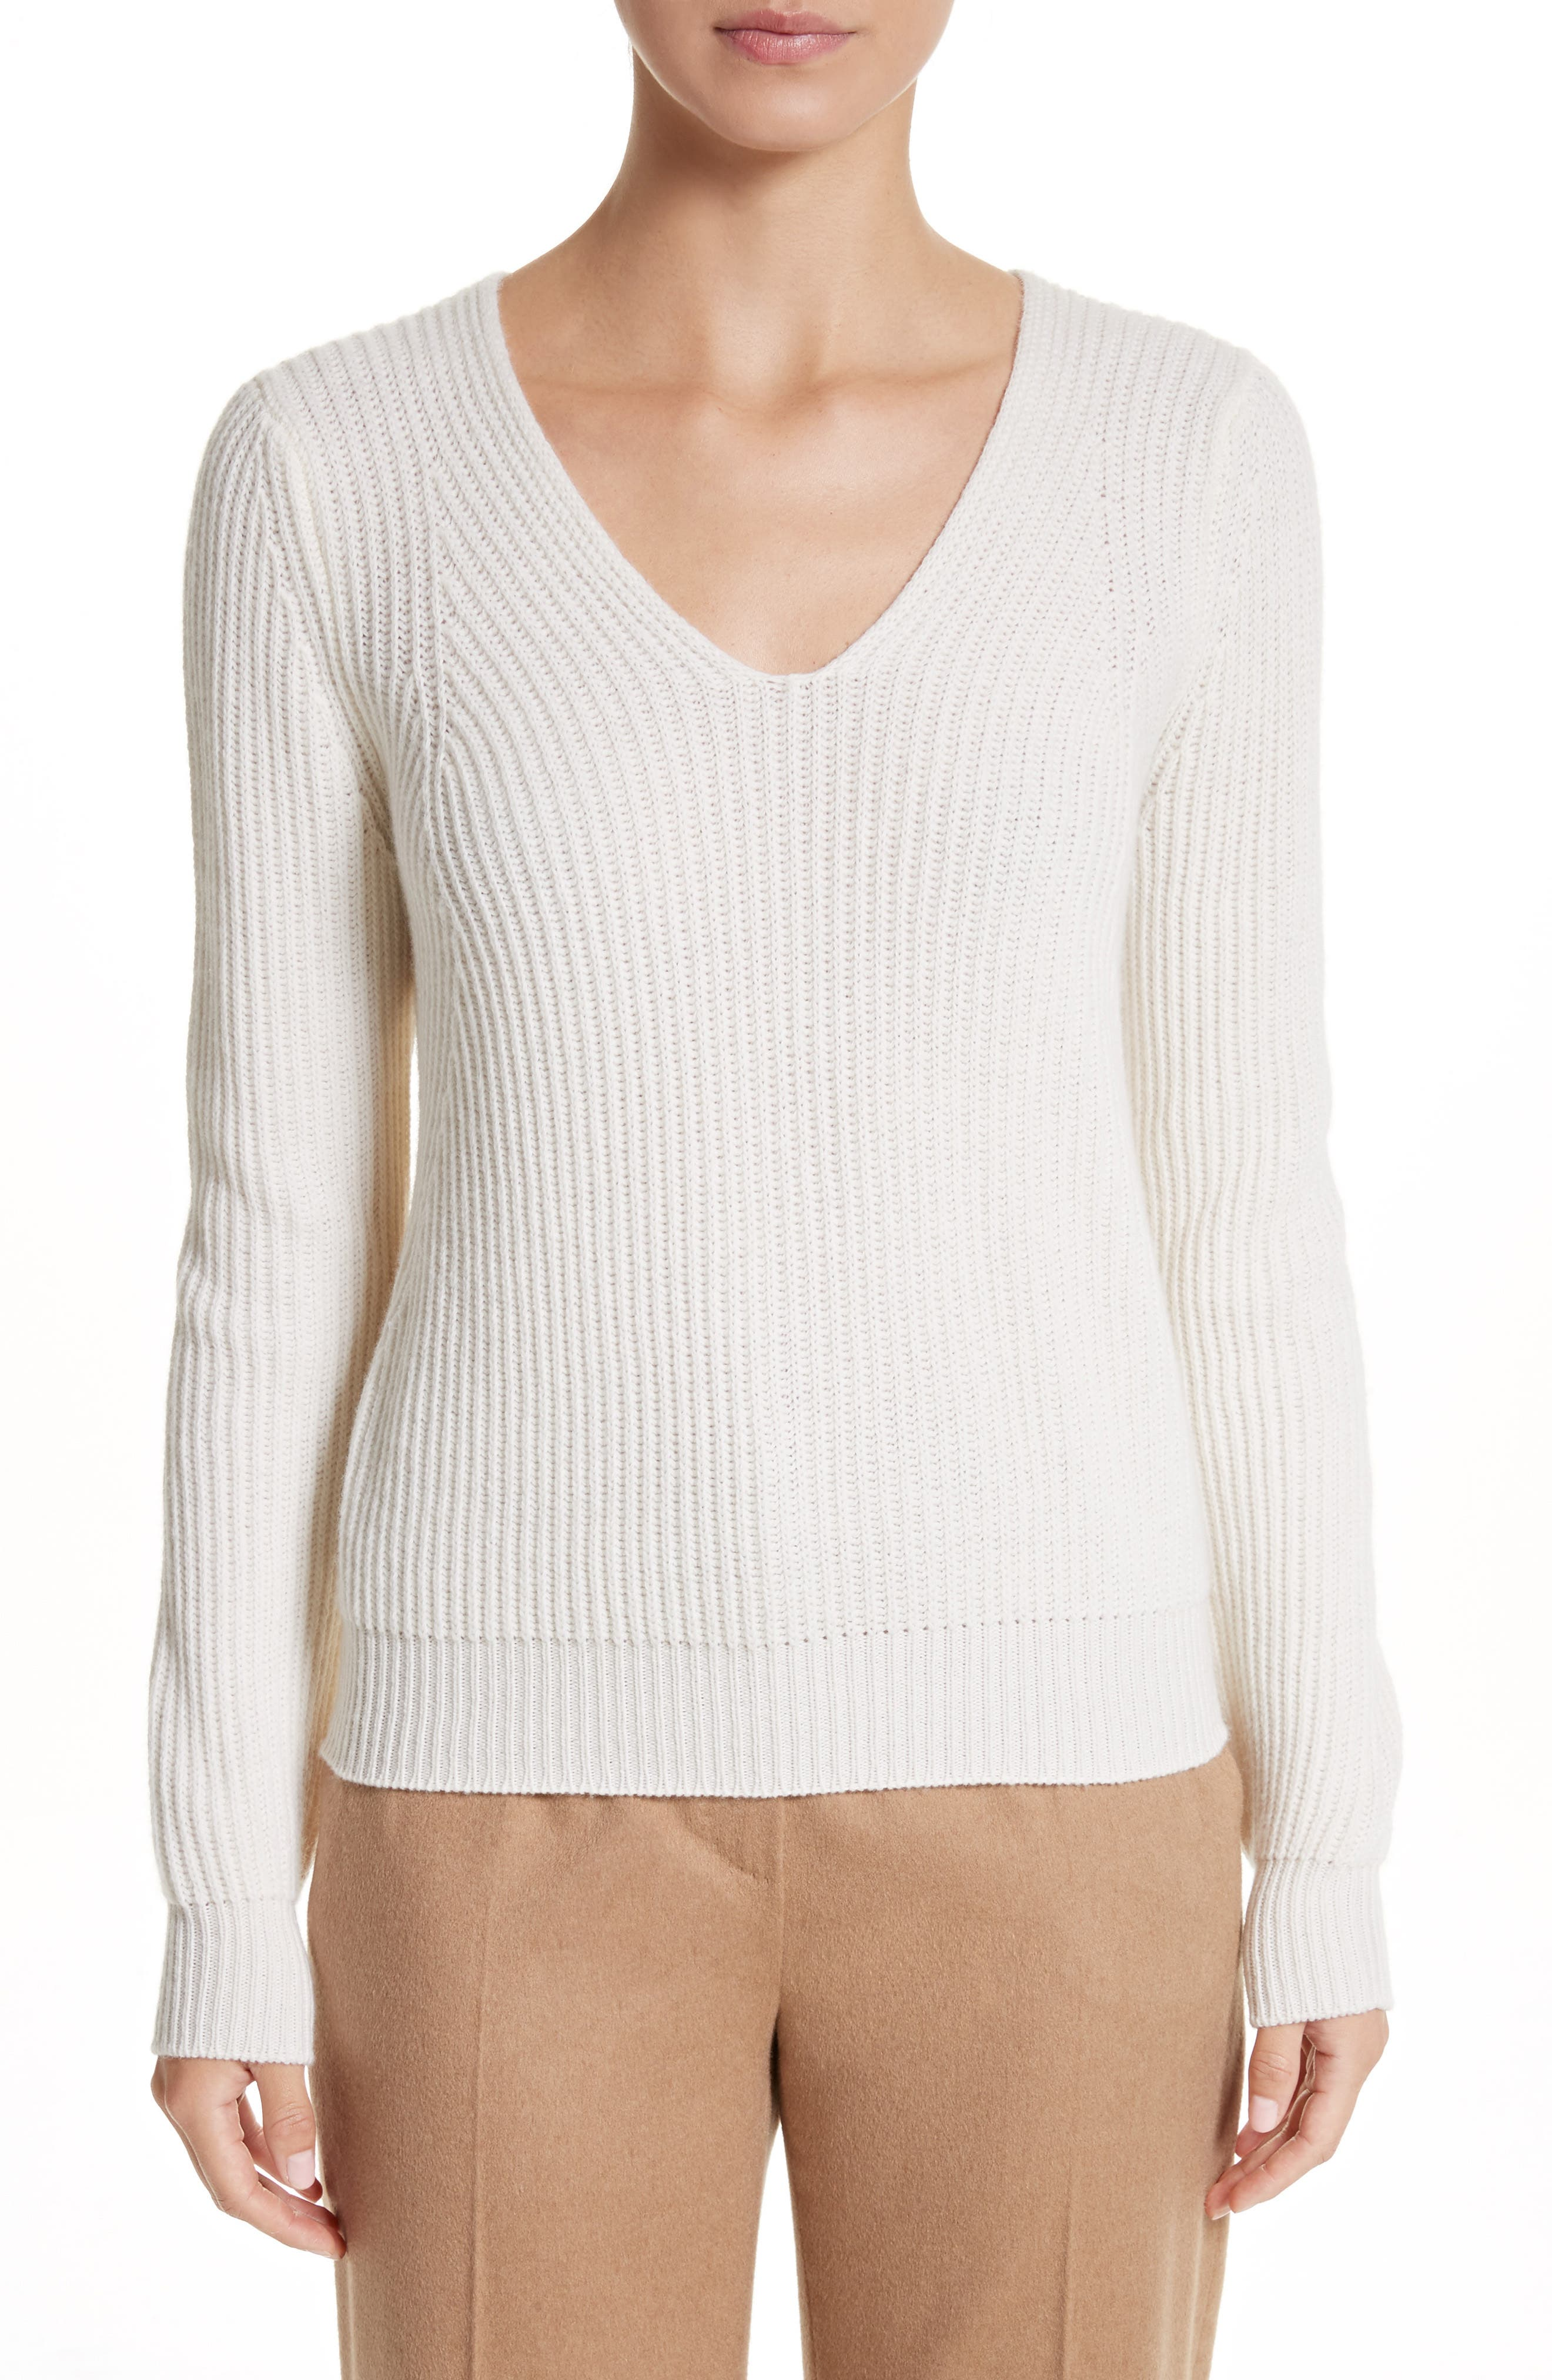 Sax Wool & Cashmere Sweater,                         Main,                         color, Ivory